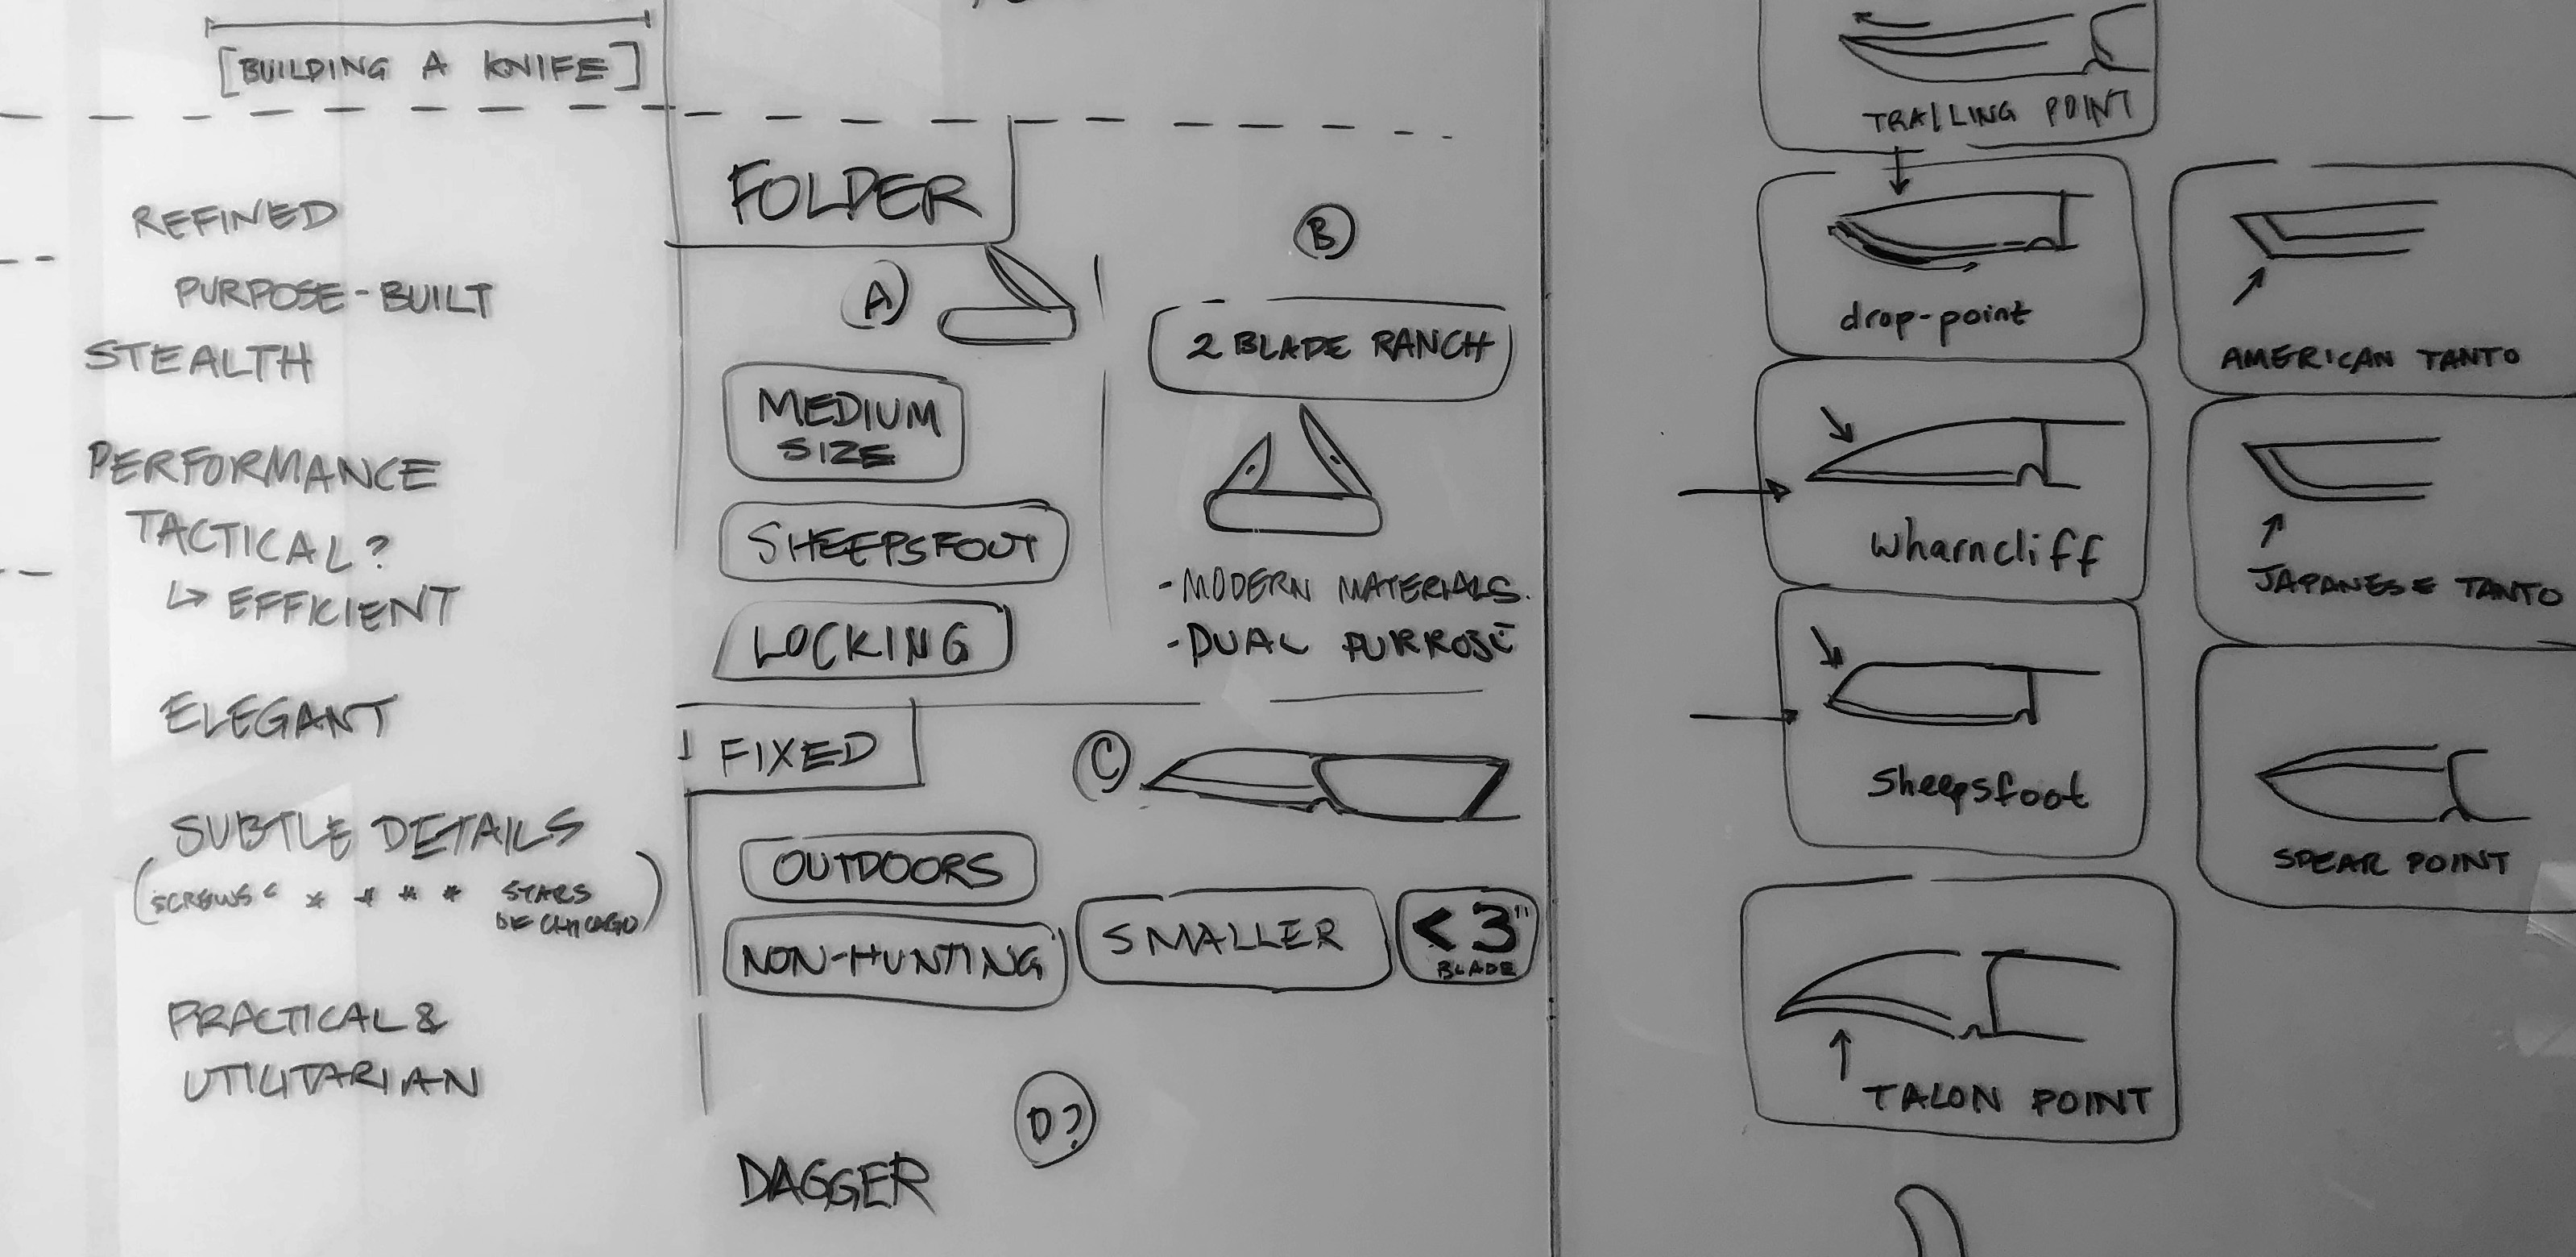 sketch thinking design arvid roach thinking white board rapid develop process design marker idea post it note ideation industrial design outline process organize